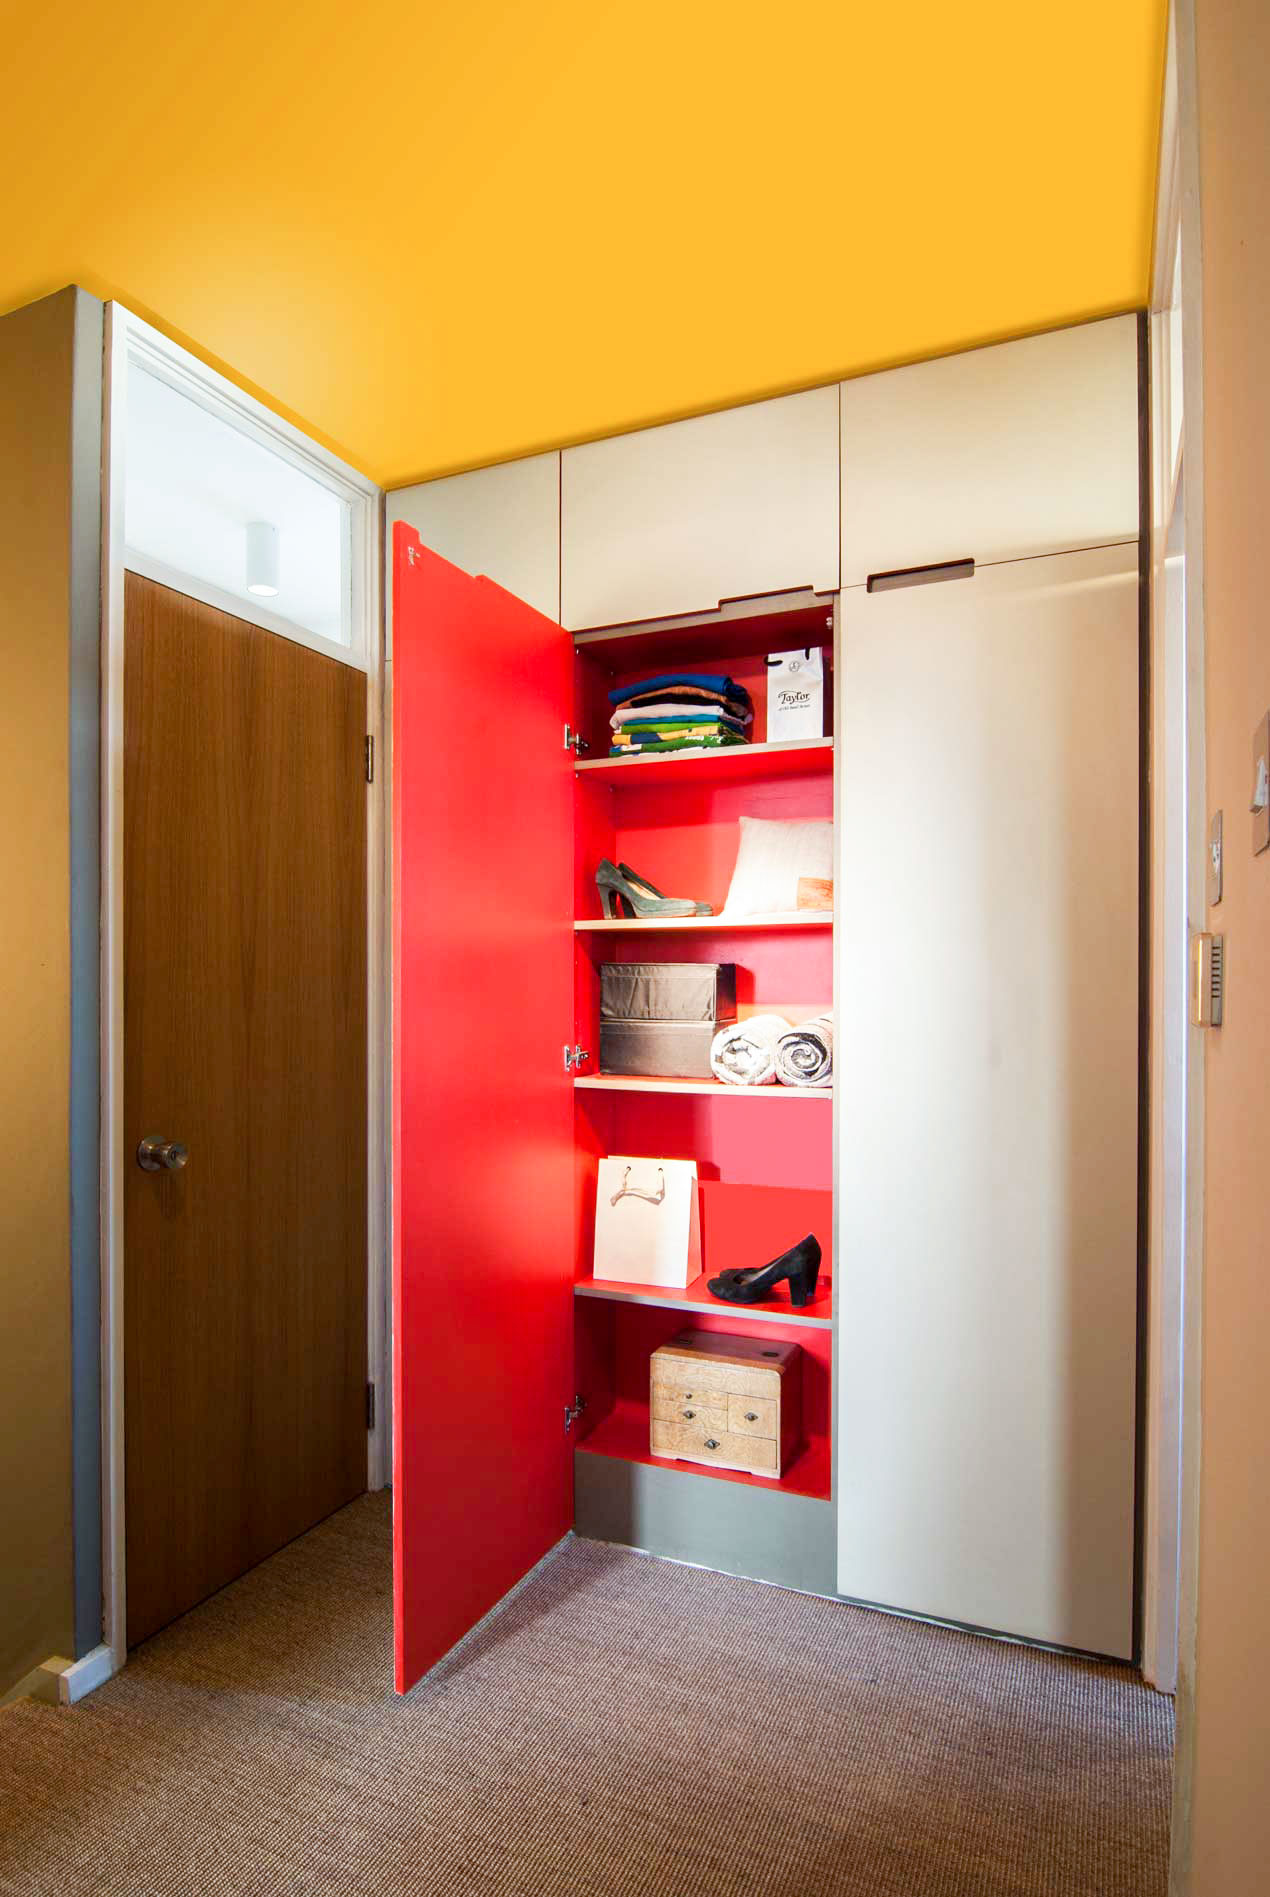 Bright coloured unique joinery cupboard offers plenty of storage space.